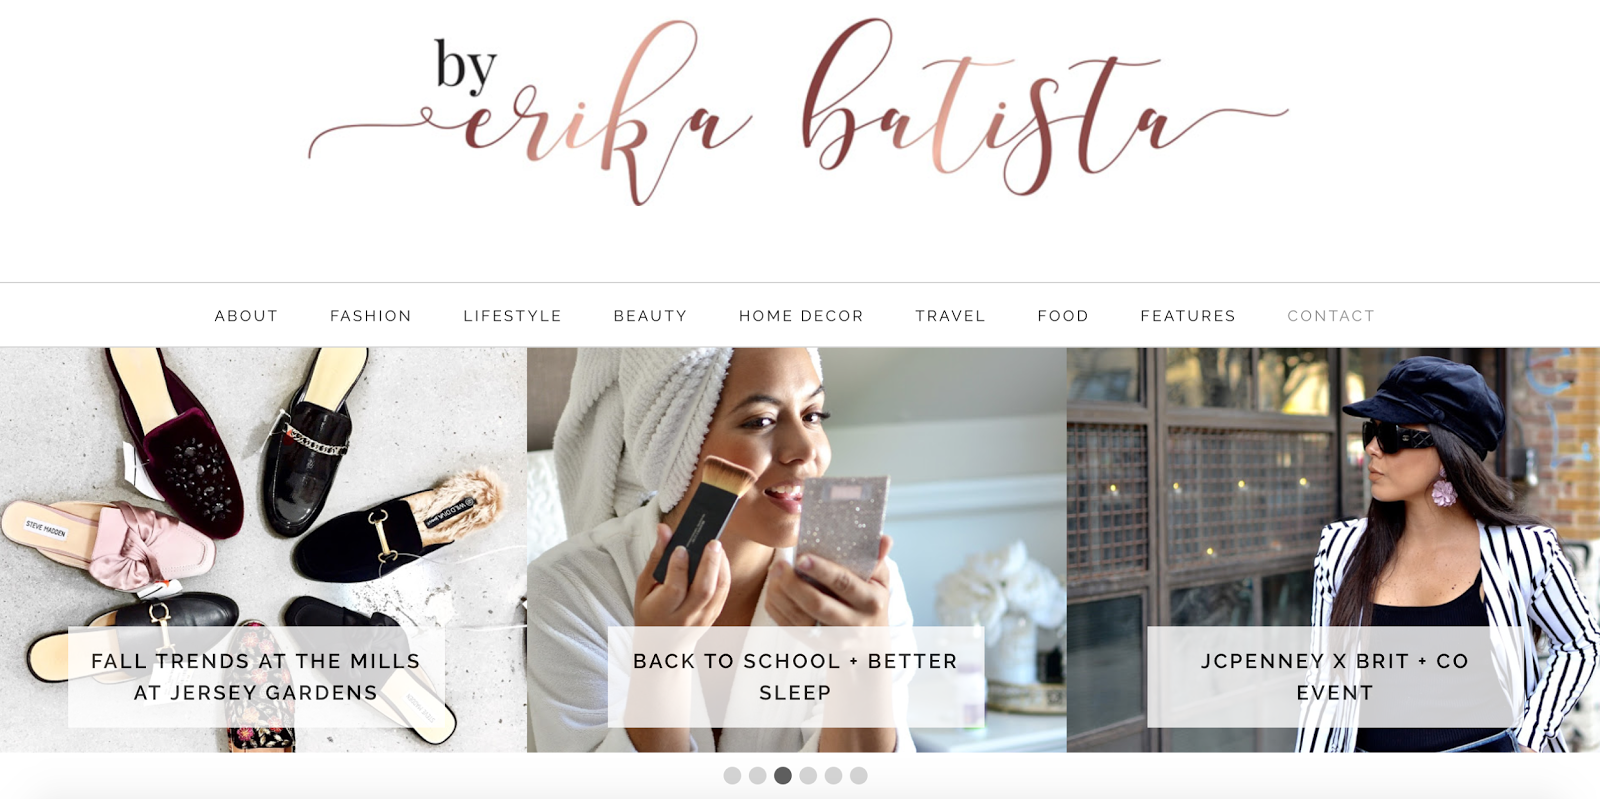 5 Ways To Invest In Your Blog By Erika Batista